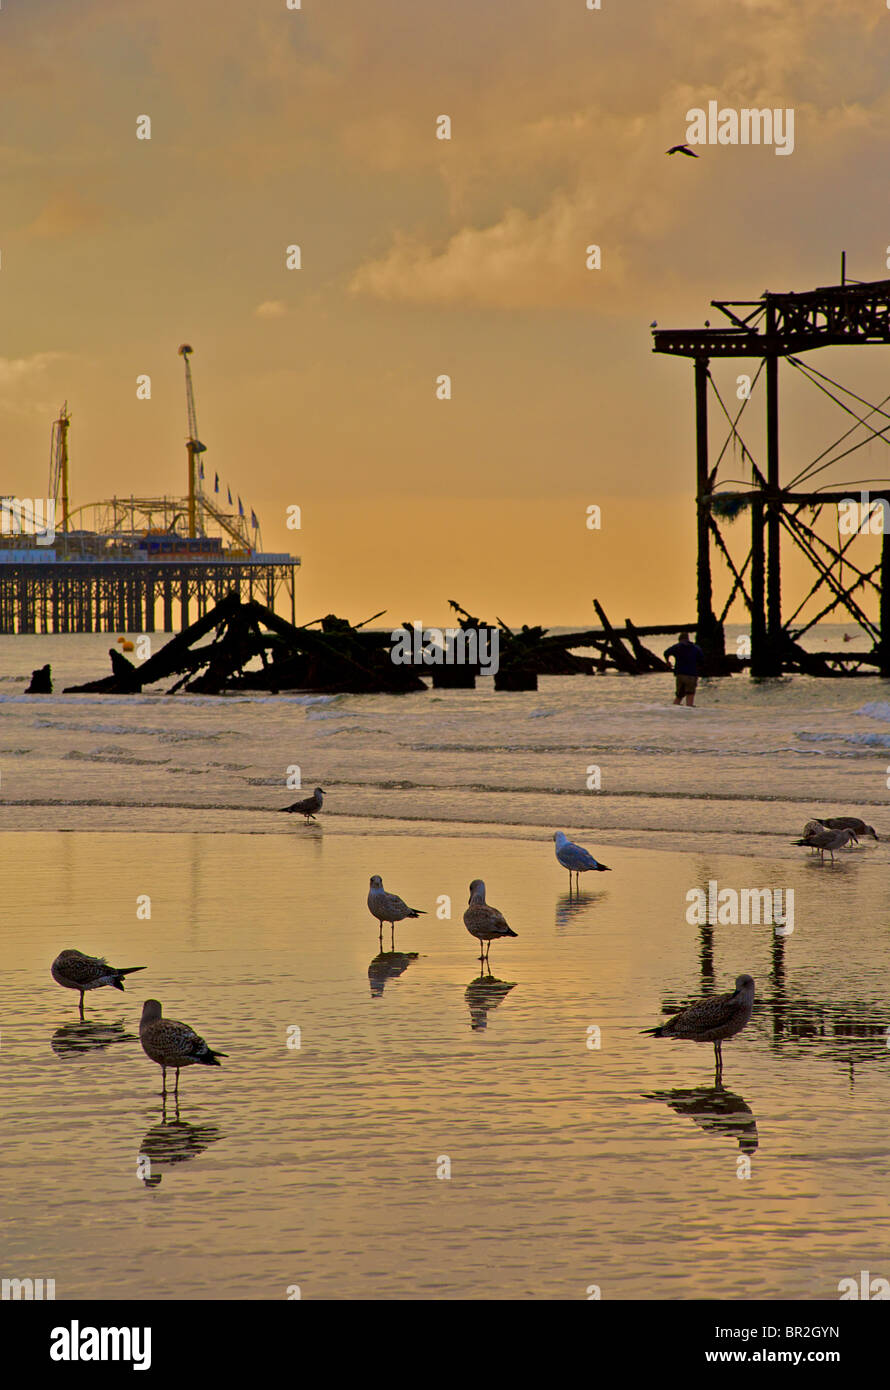 Silhouettes of seagulls and the dilapidated West Pier, Brighton. Low tide at sunrise. East Sussex, England - Stock Image